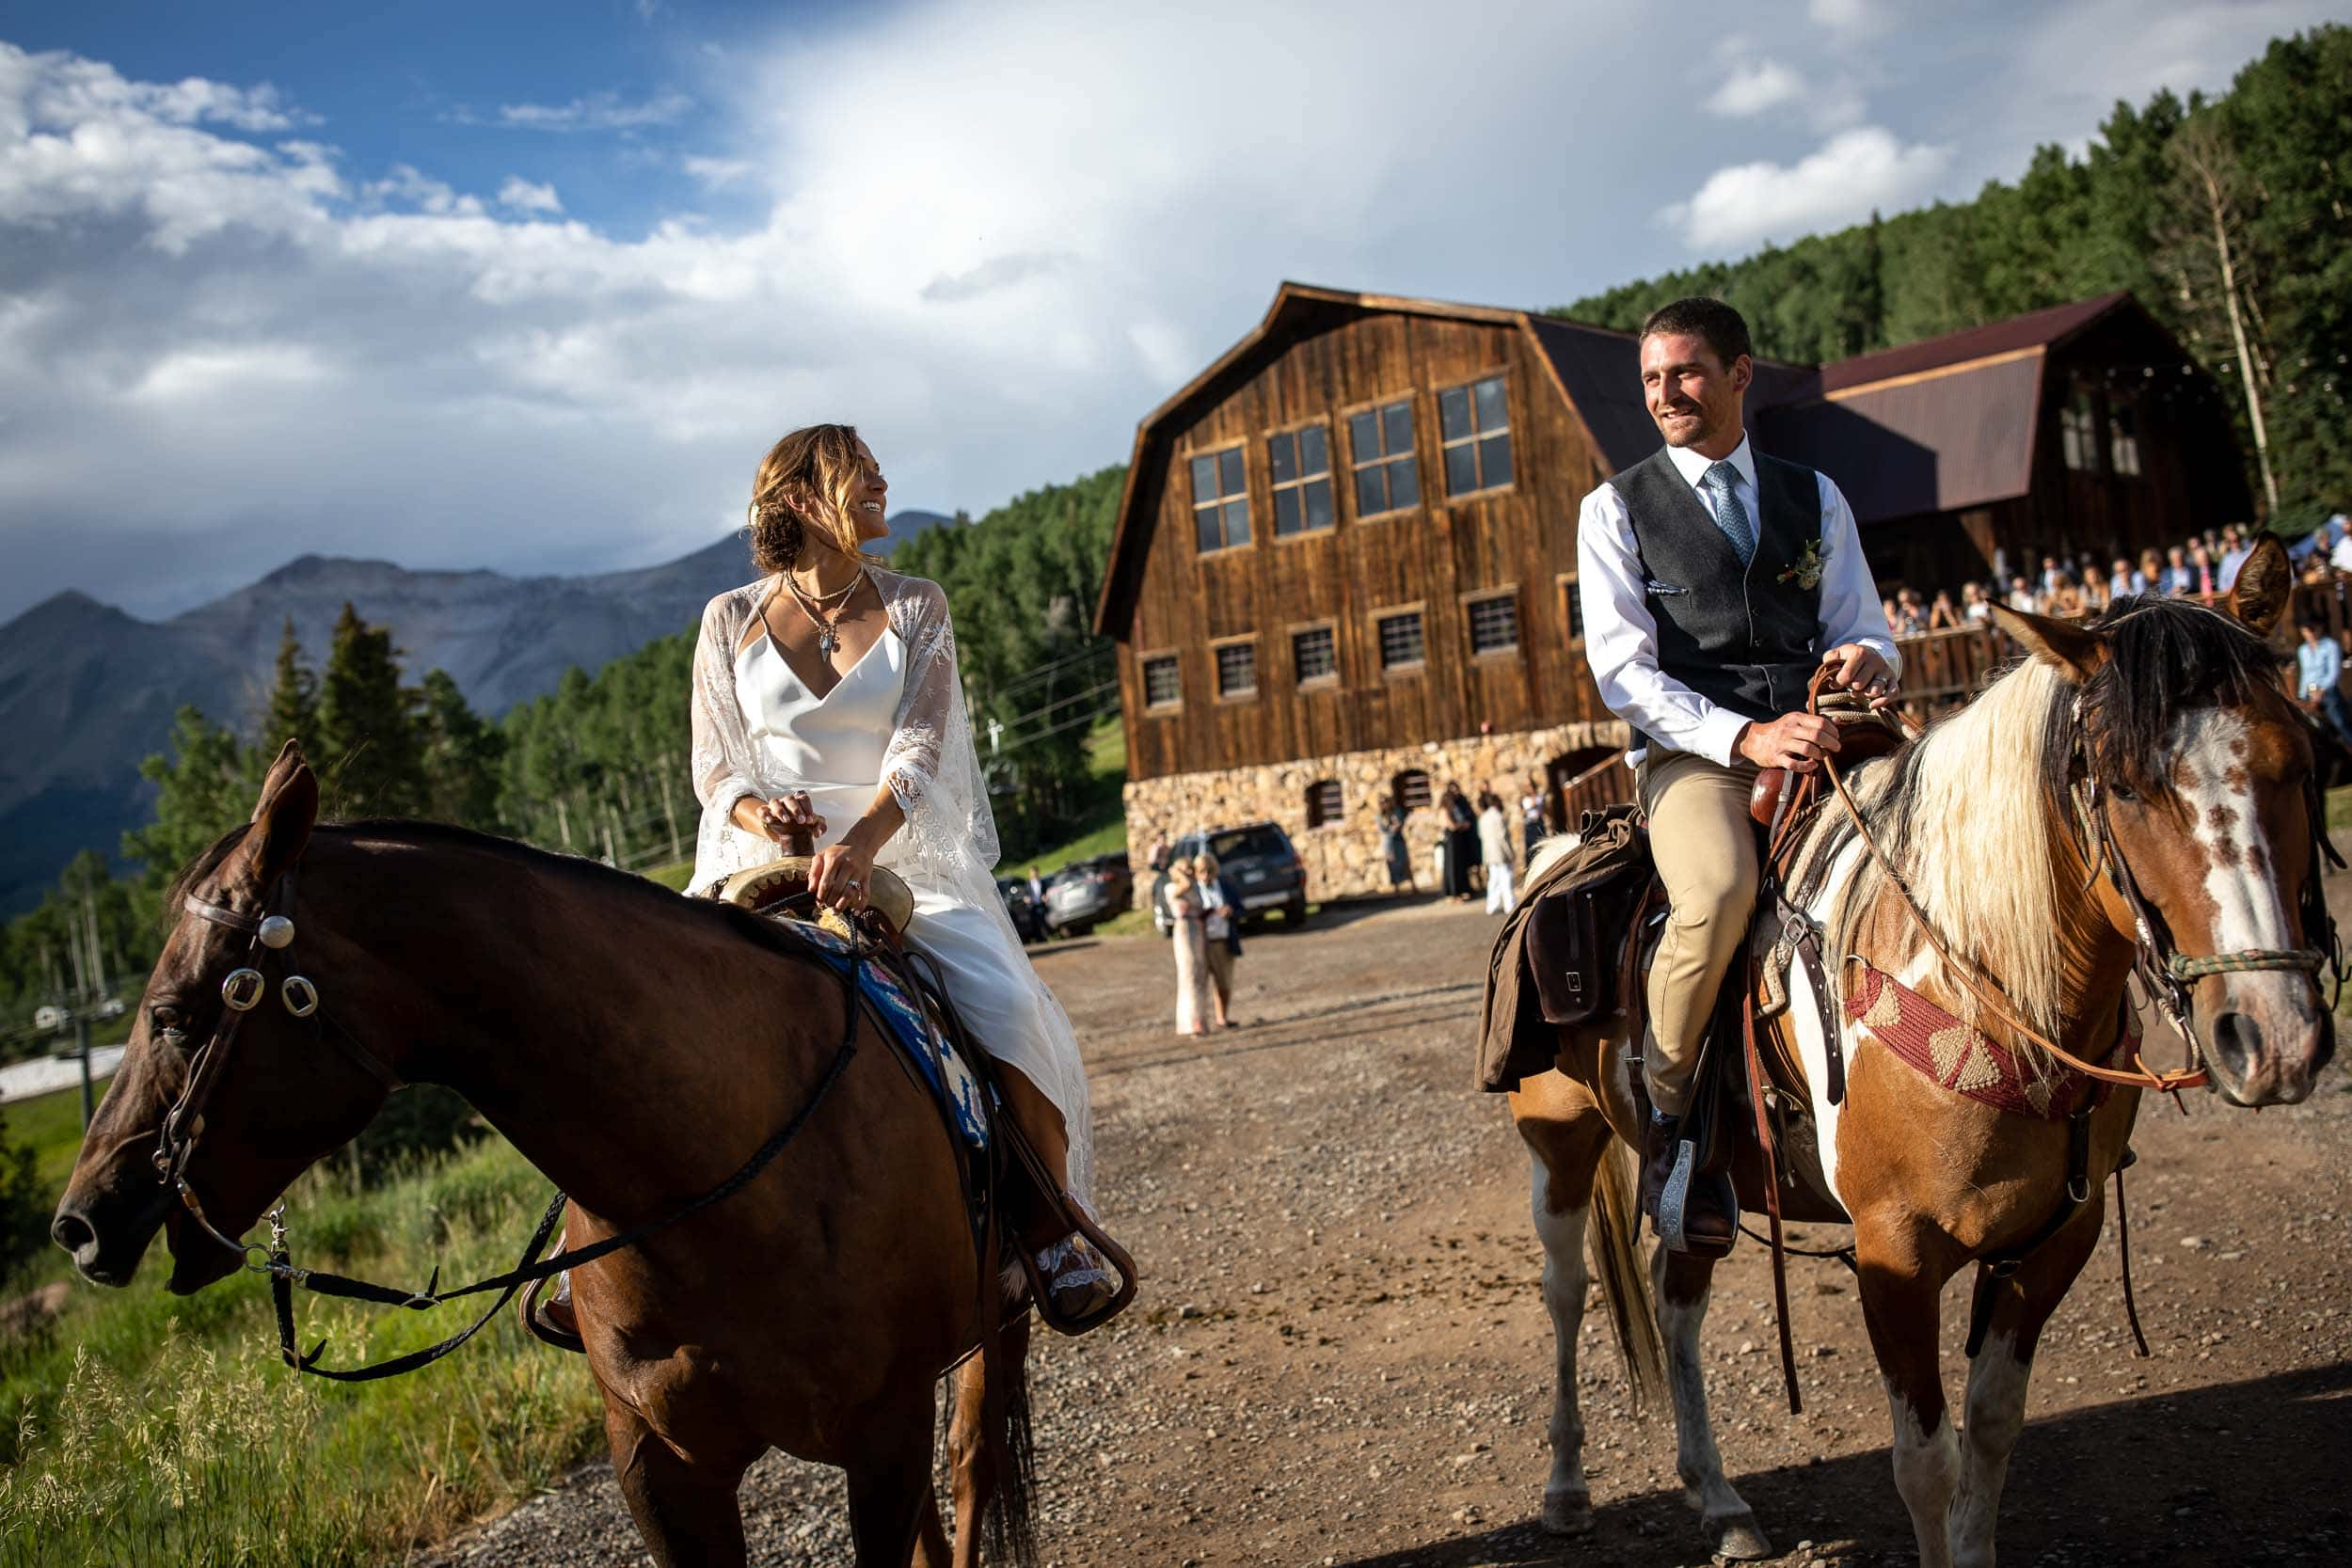 Matty and Alexis's beautiful wedding in the mountains of Colorado.